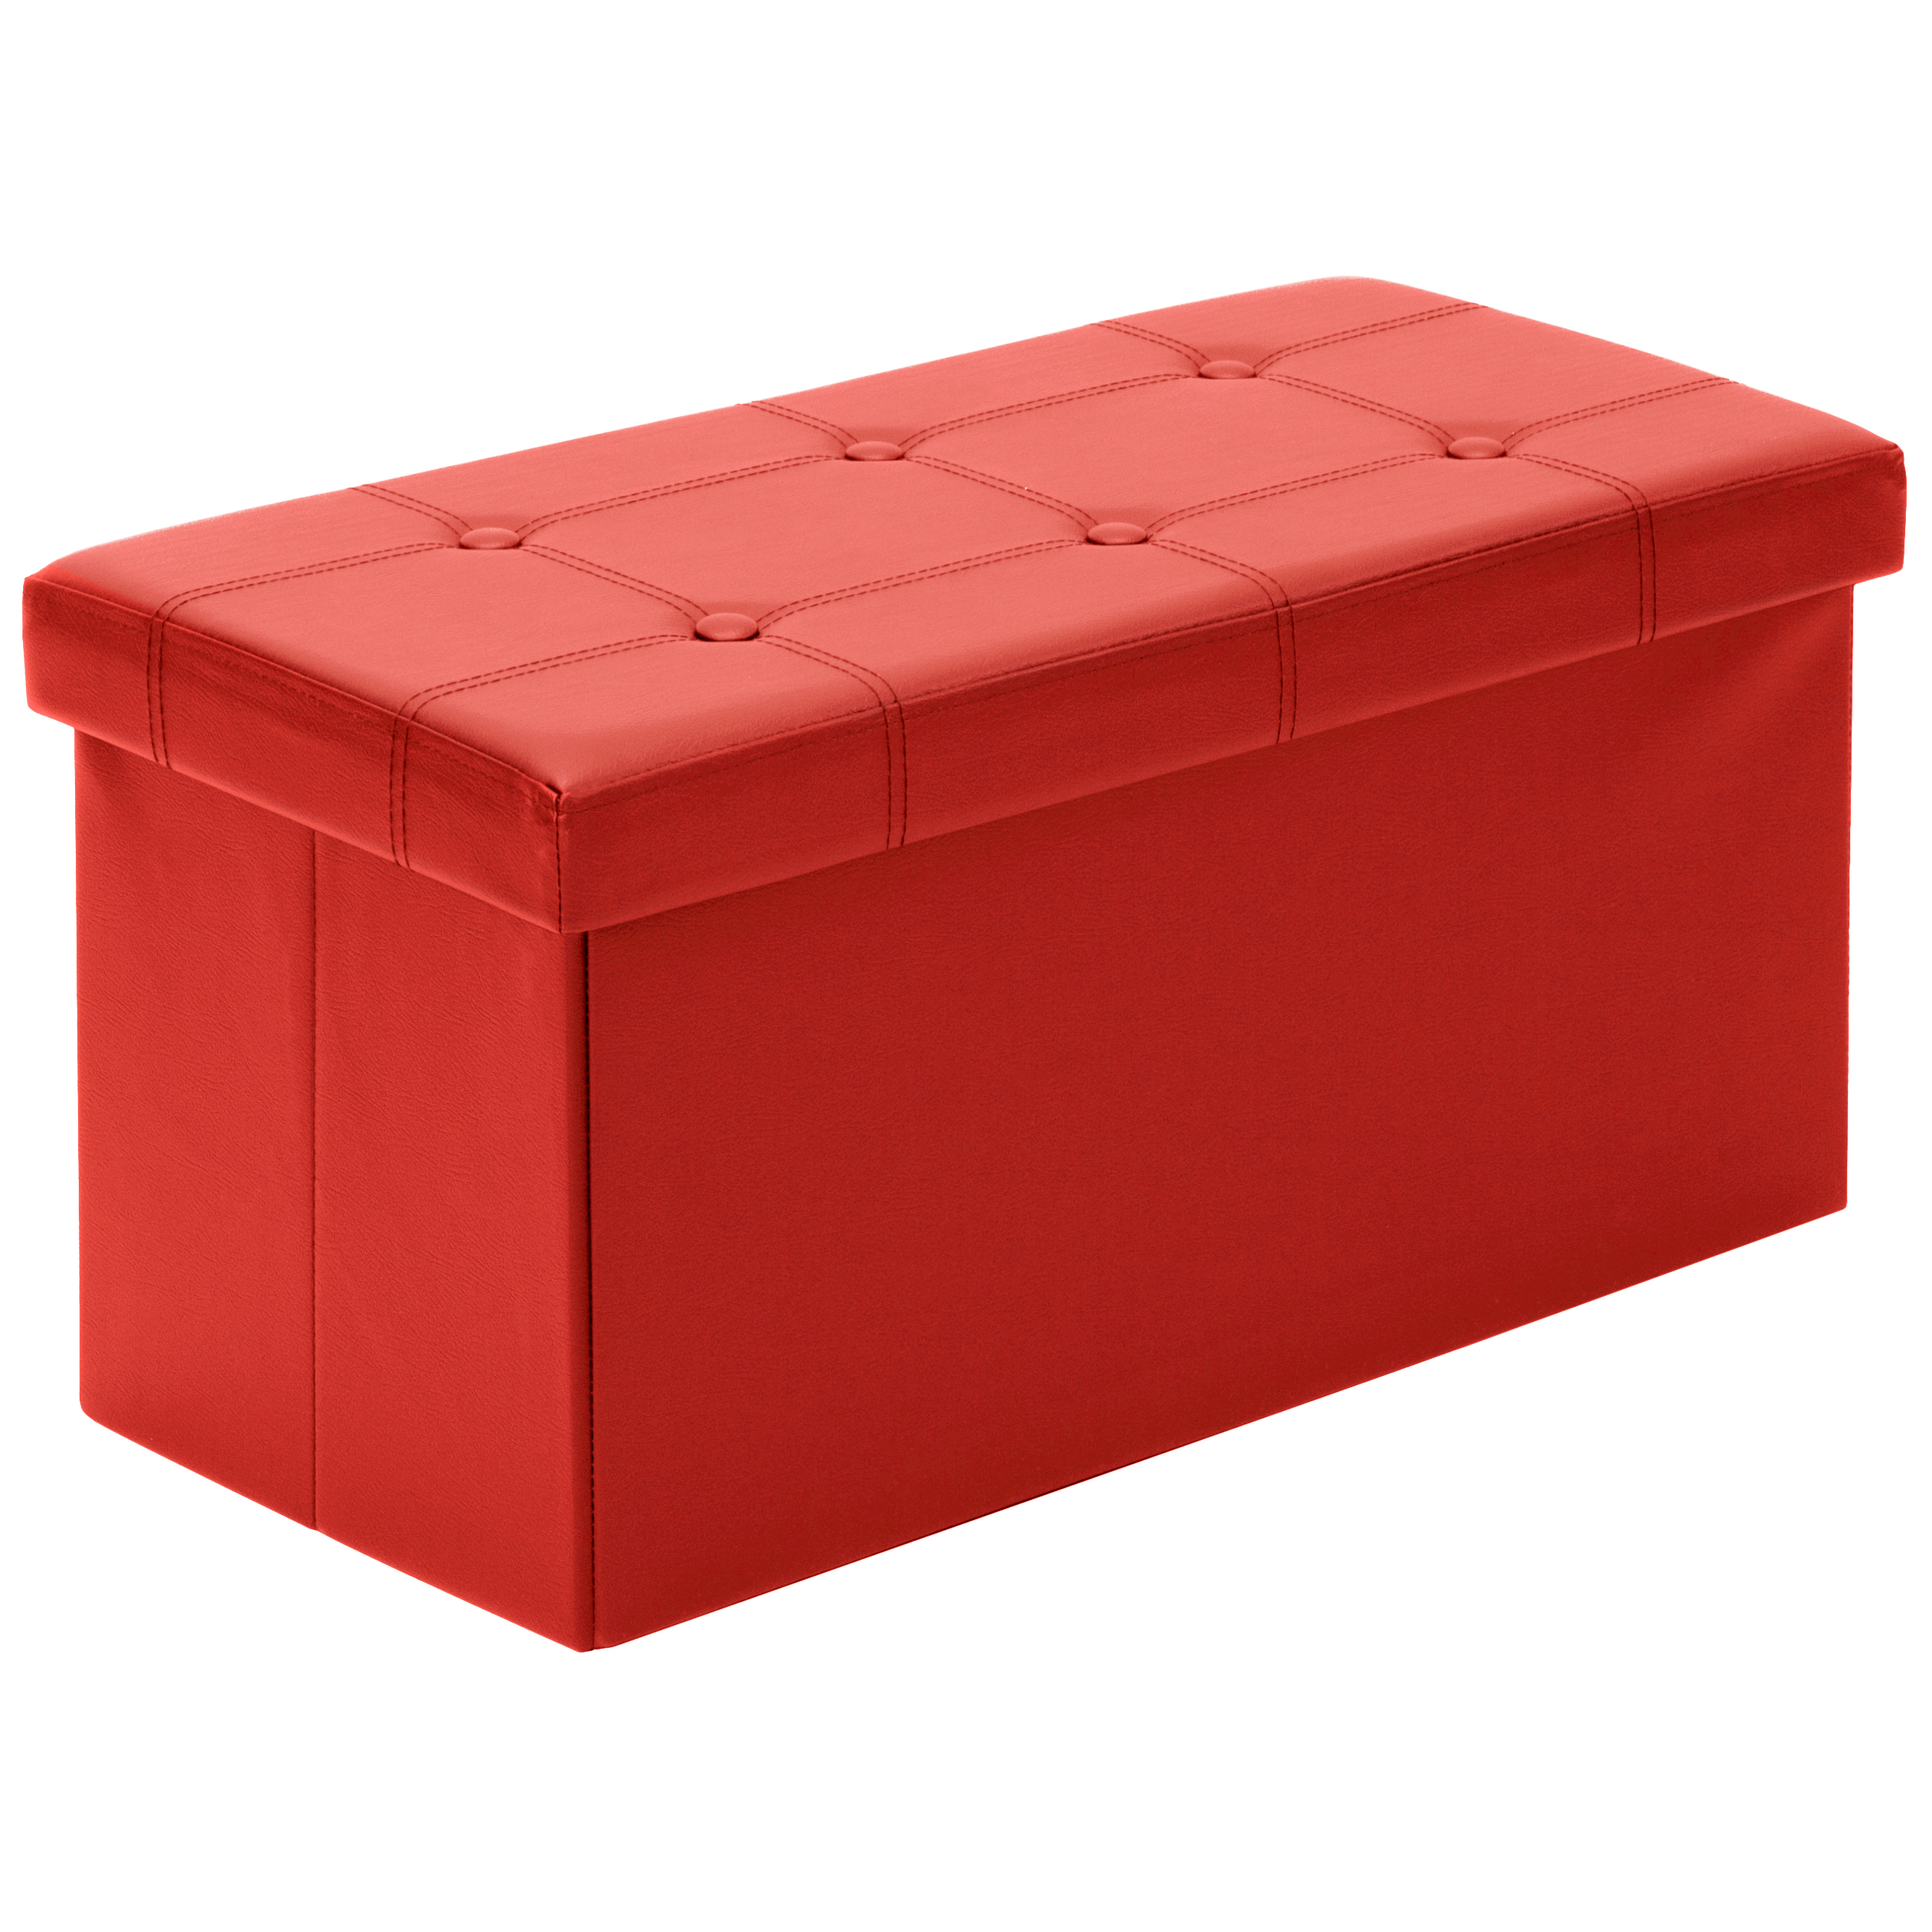 Best Choice Products Large Leather Folding Storage Ottoman Bench Red Ebay